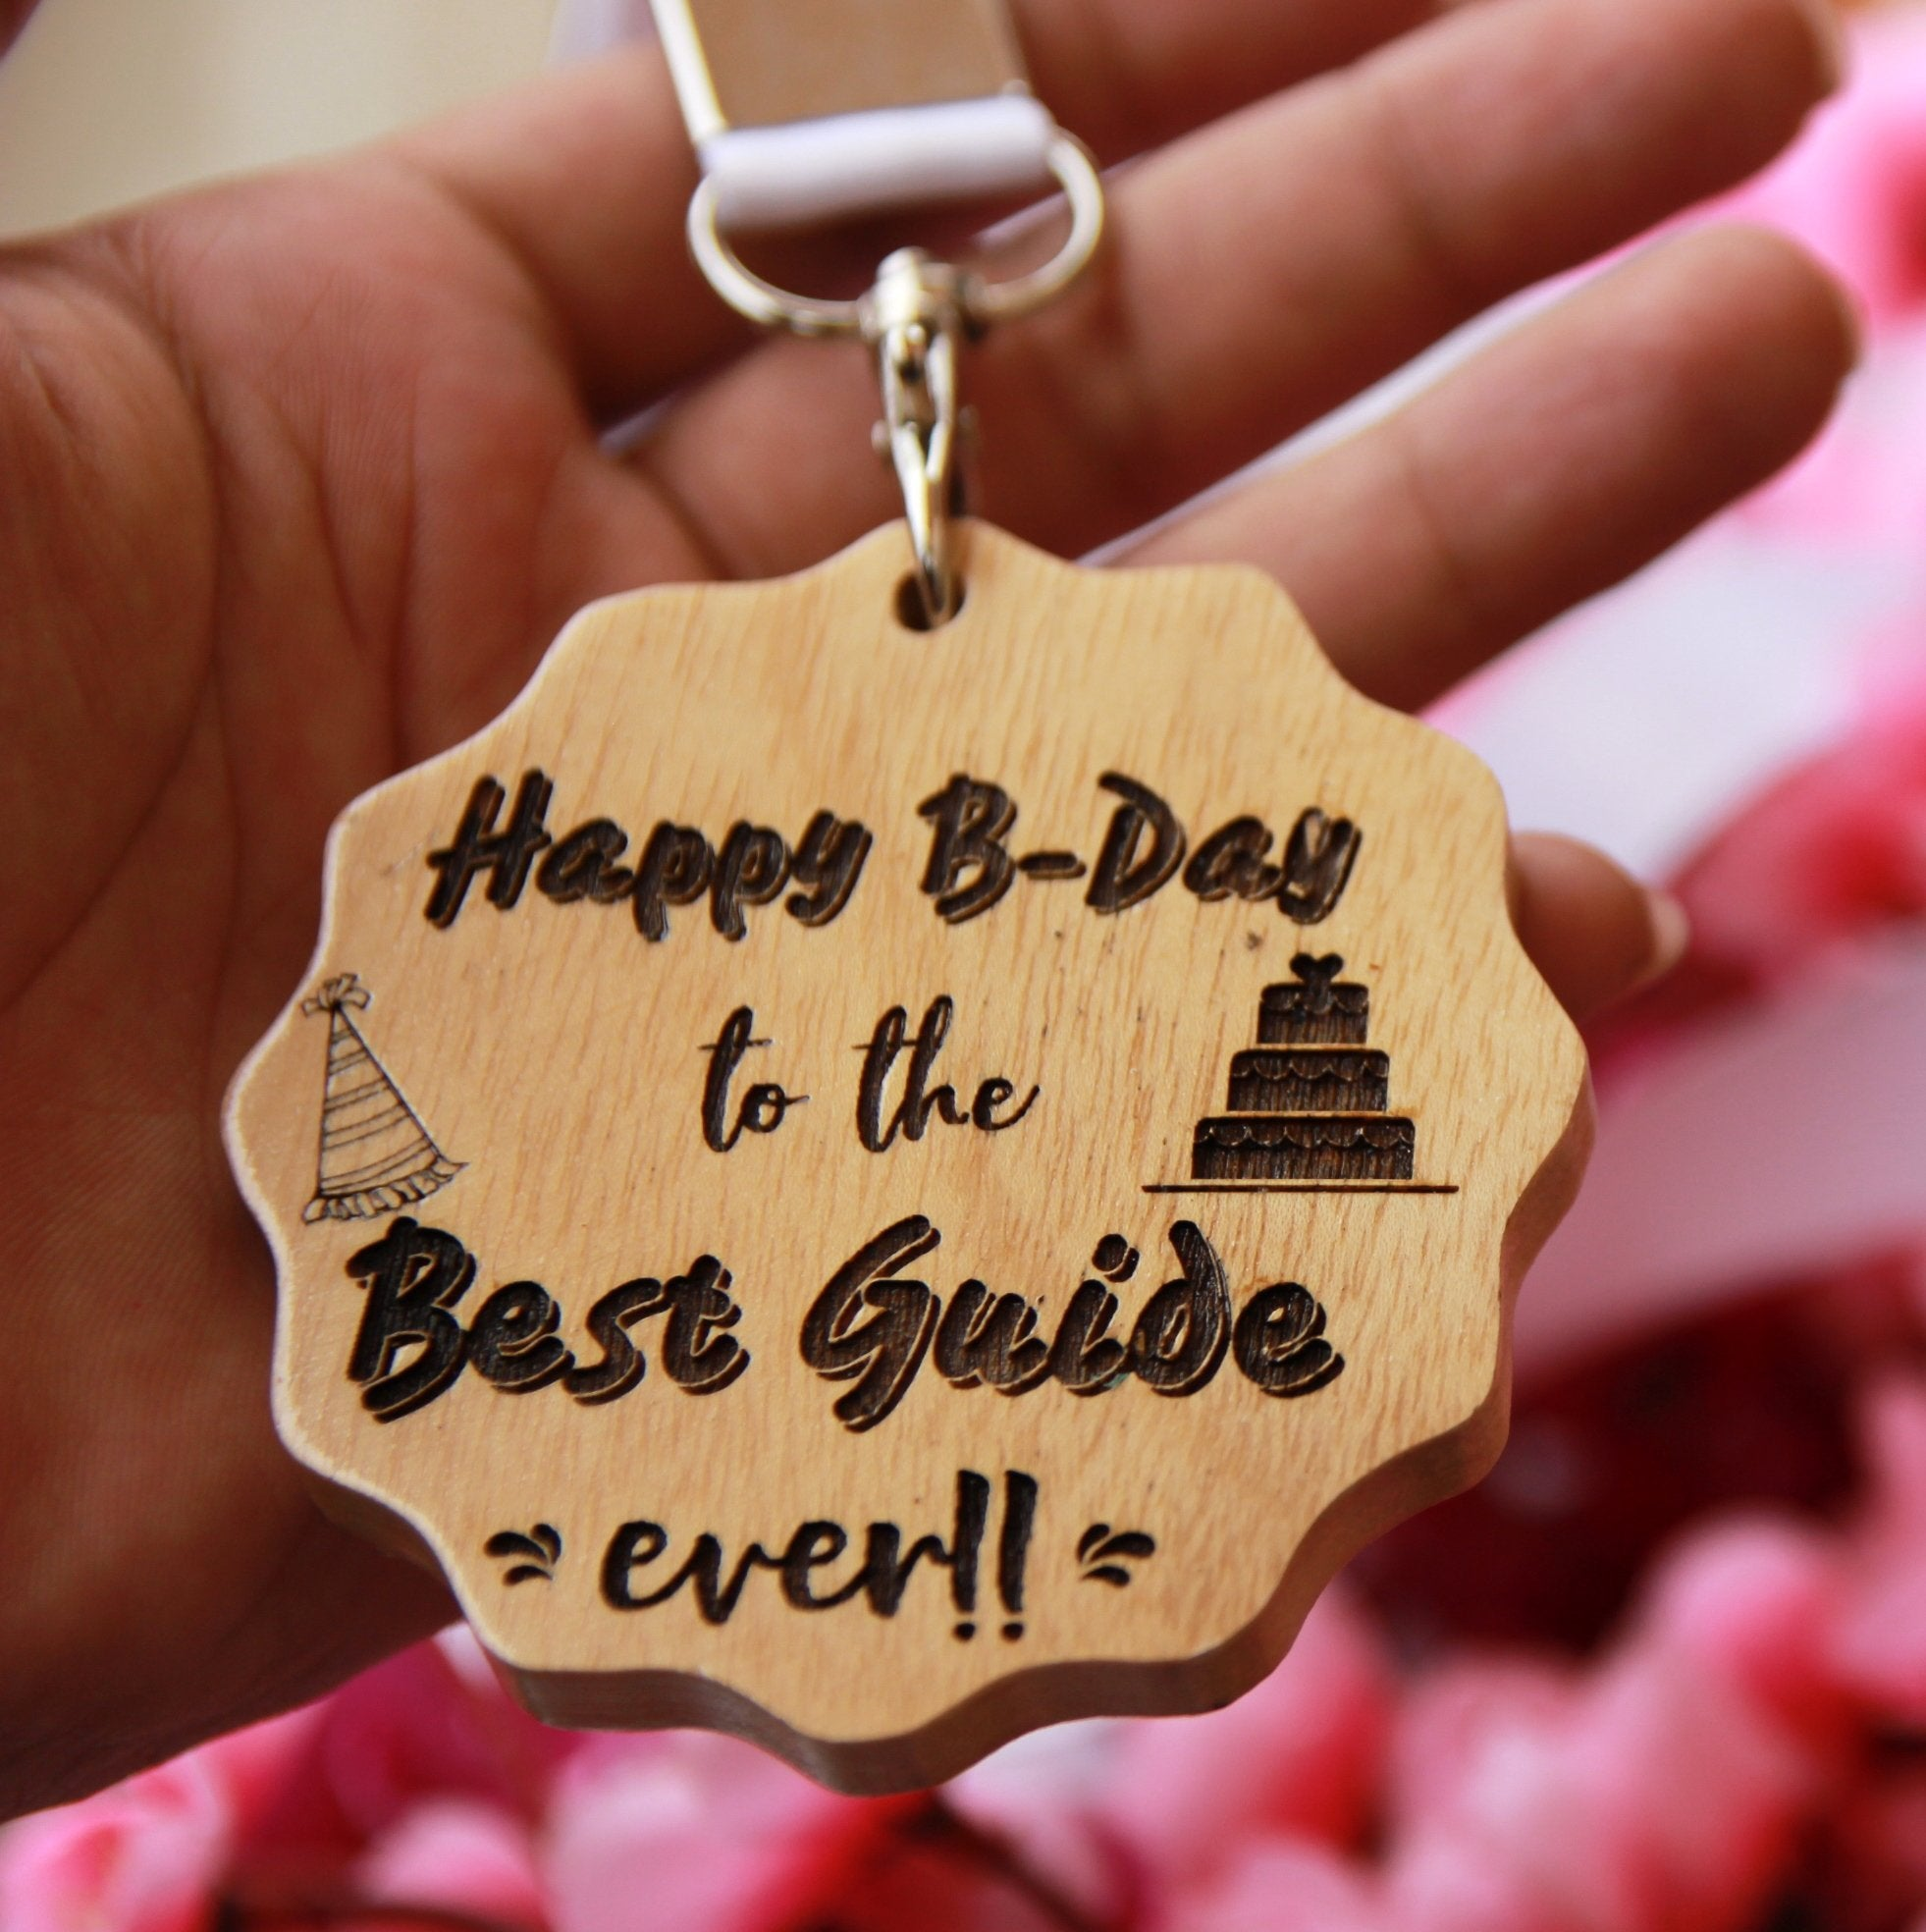 Customized Wooden Birthday Medal For Teacher. This Engraved Medal Makes The Best Birthday Gifts For Teachers. Buy More Personalized Gifts For Teachers Online From The Woodgeek Store.